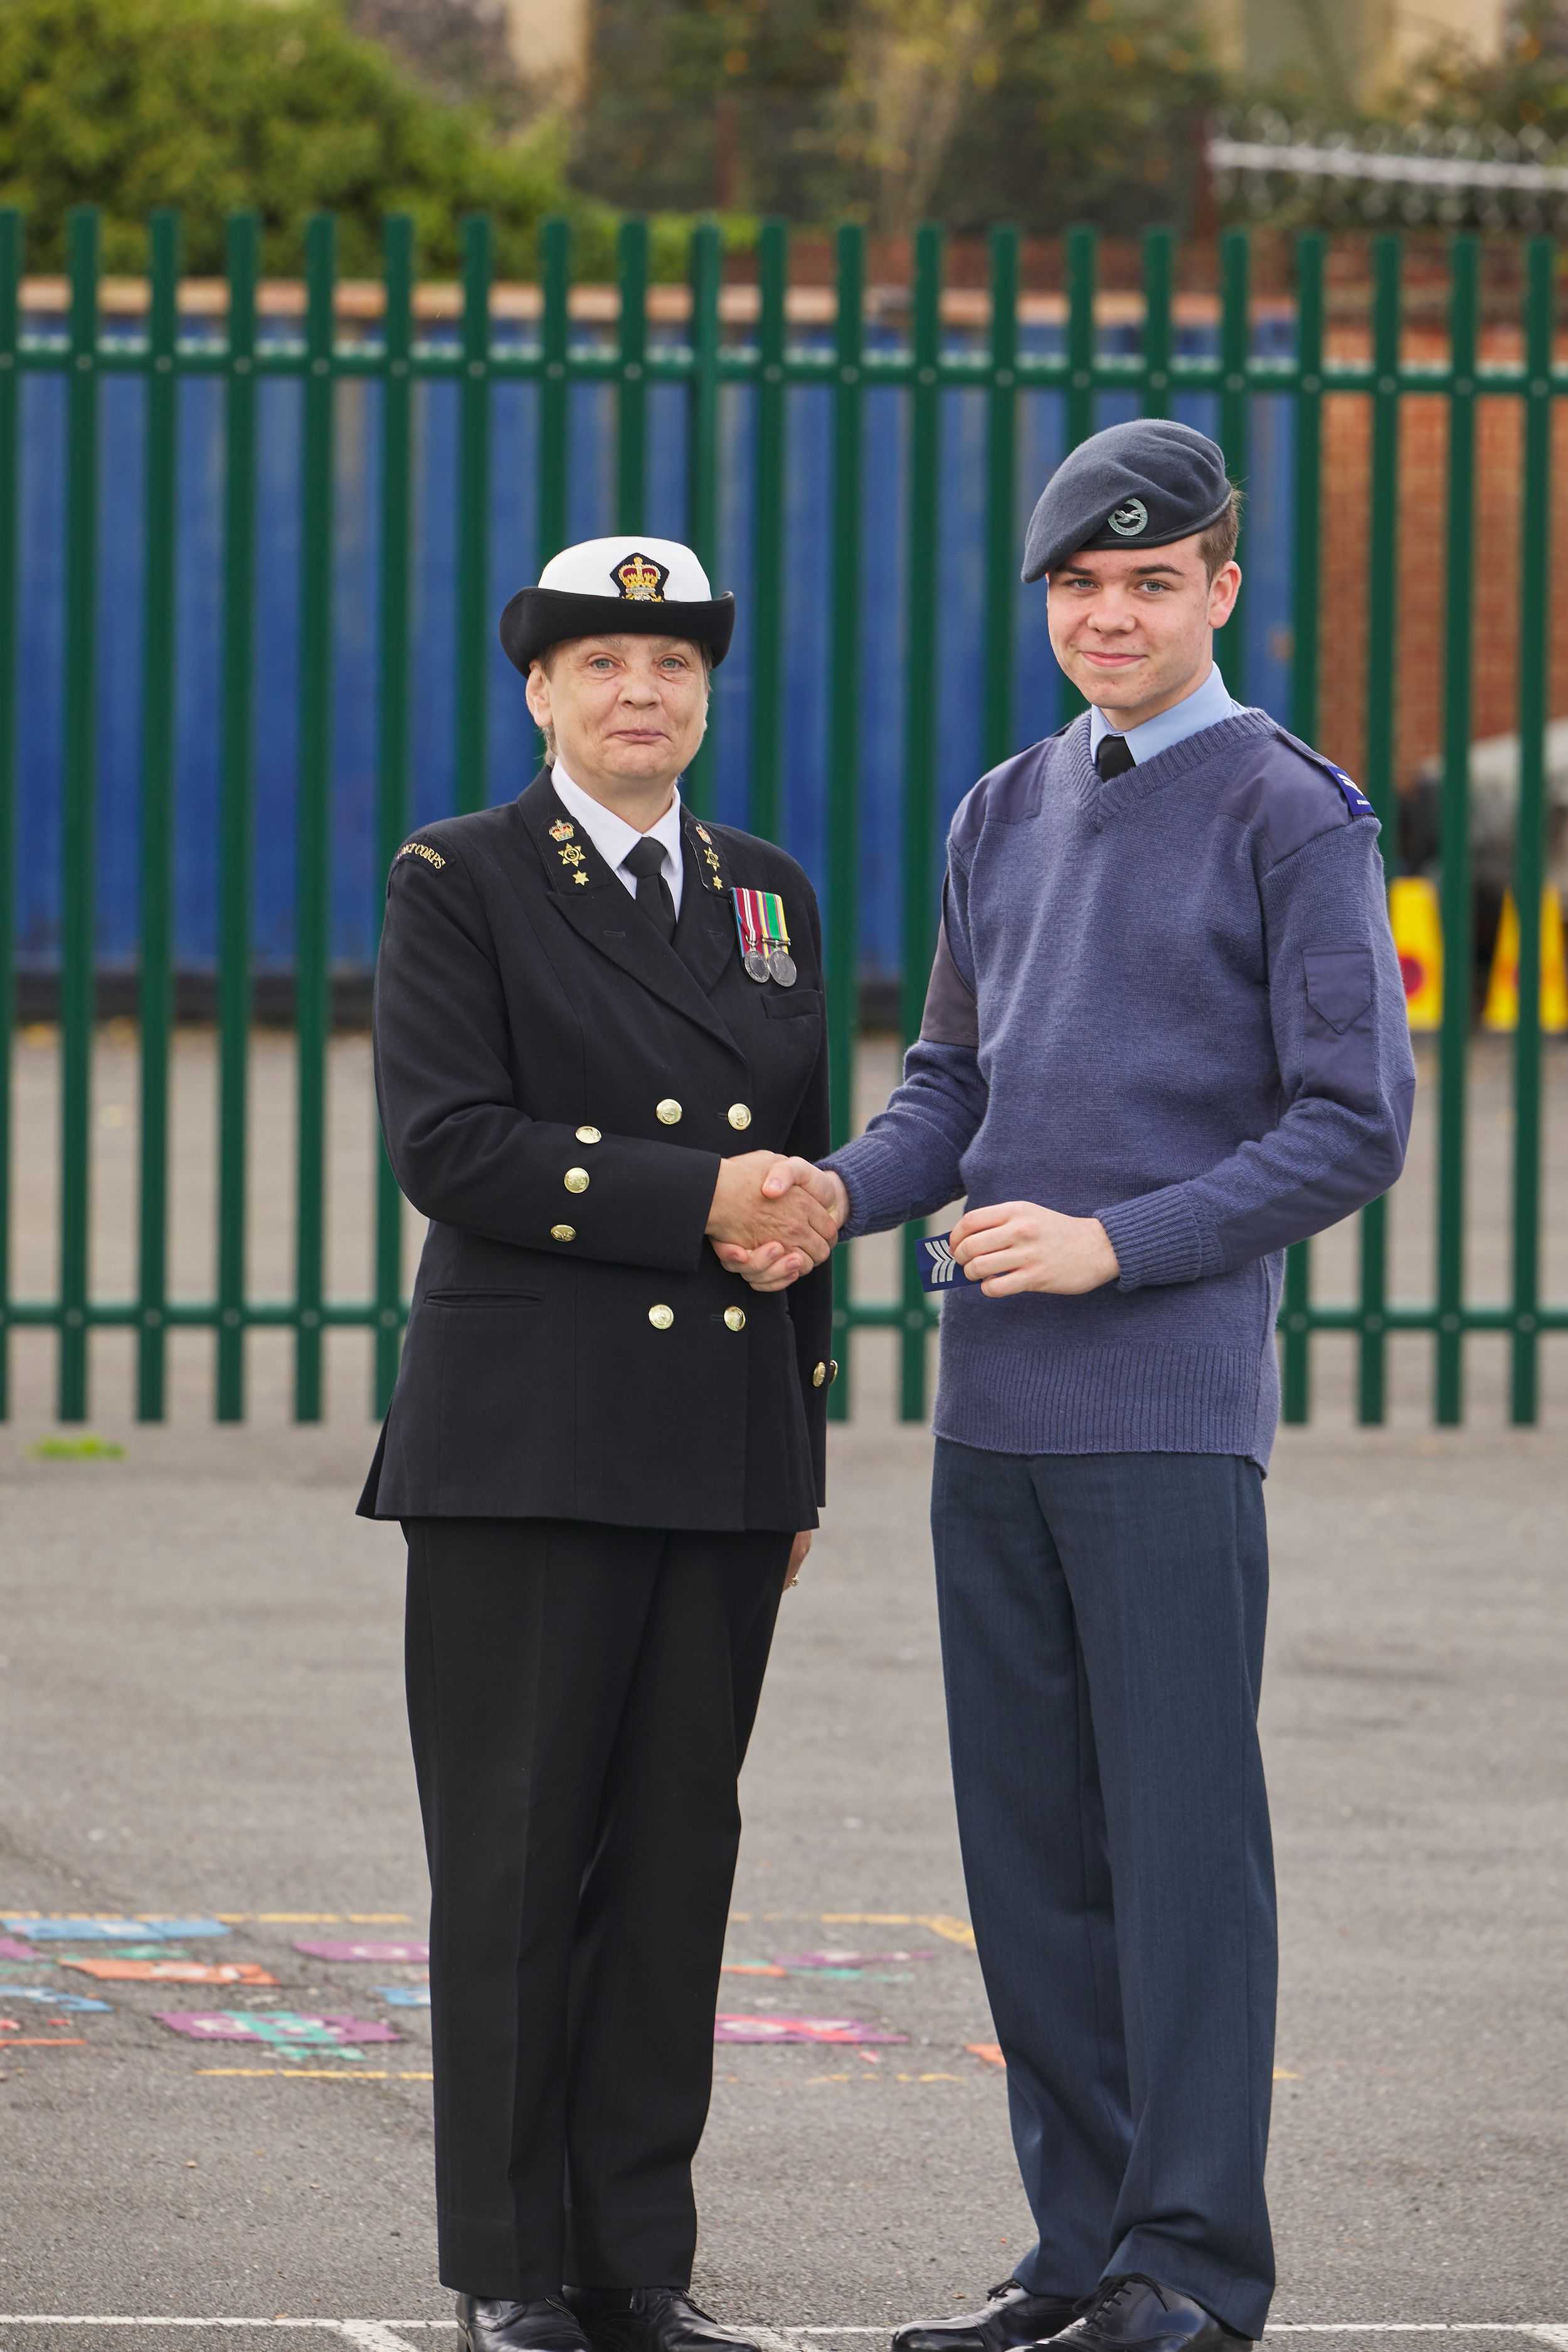 Cadet receiving promotion